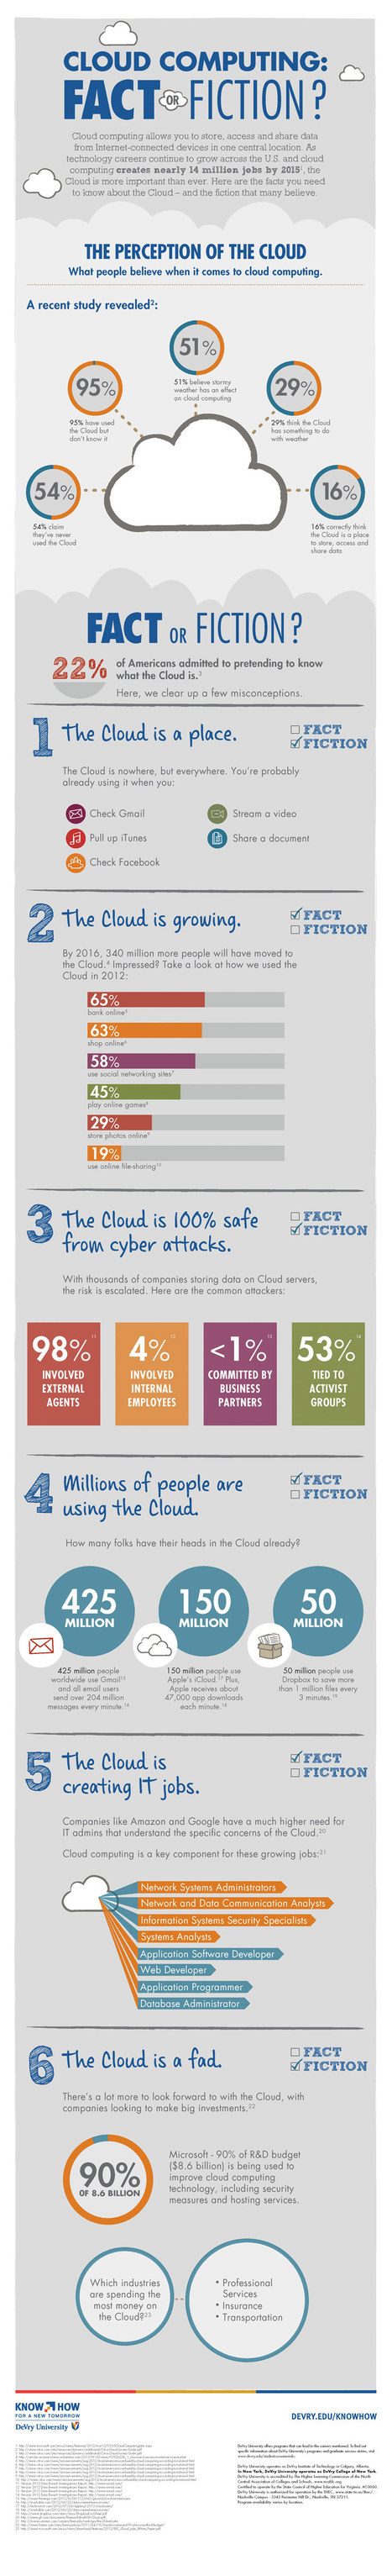 Is Cloud Computing a Fact or Fiction? – infographic | Web 2.0 for juandoming | Scoop.it